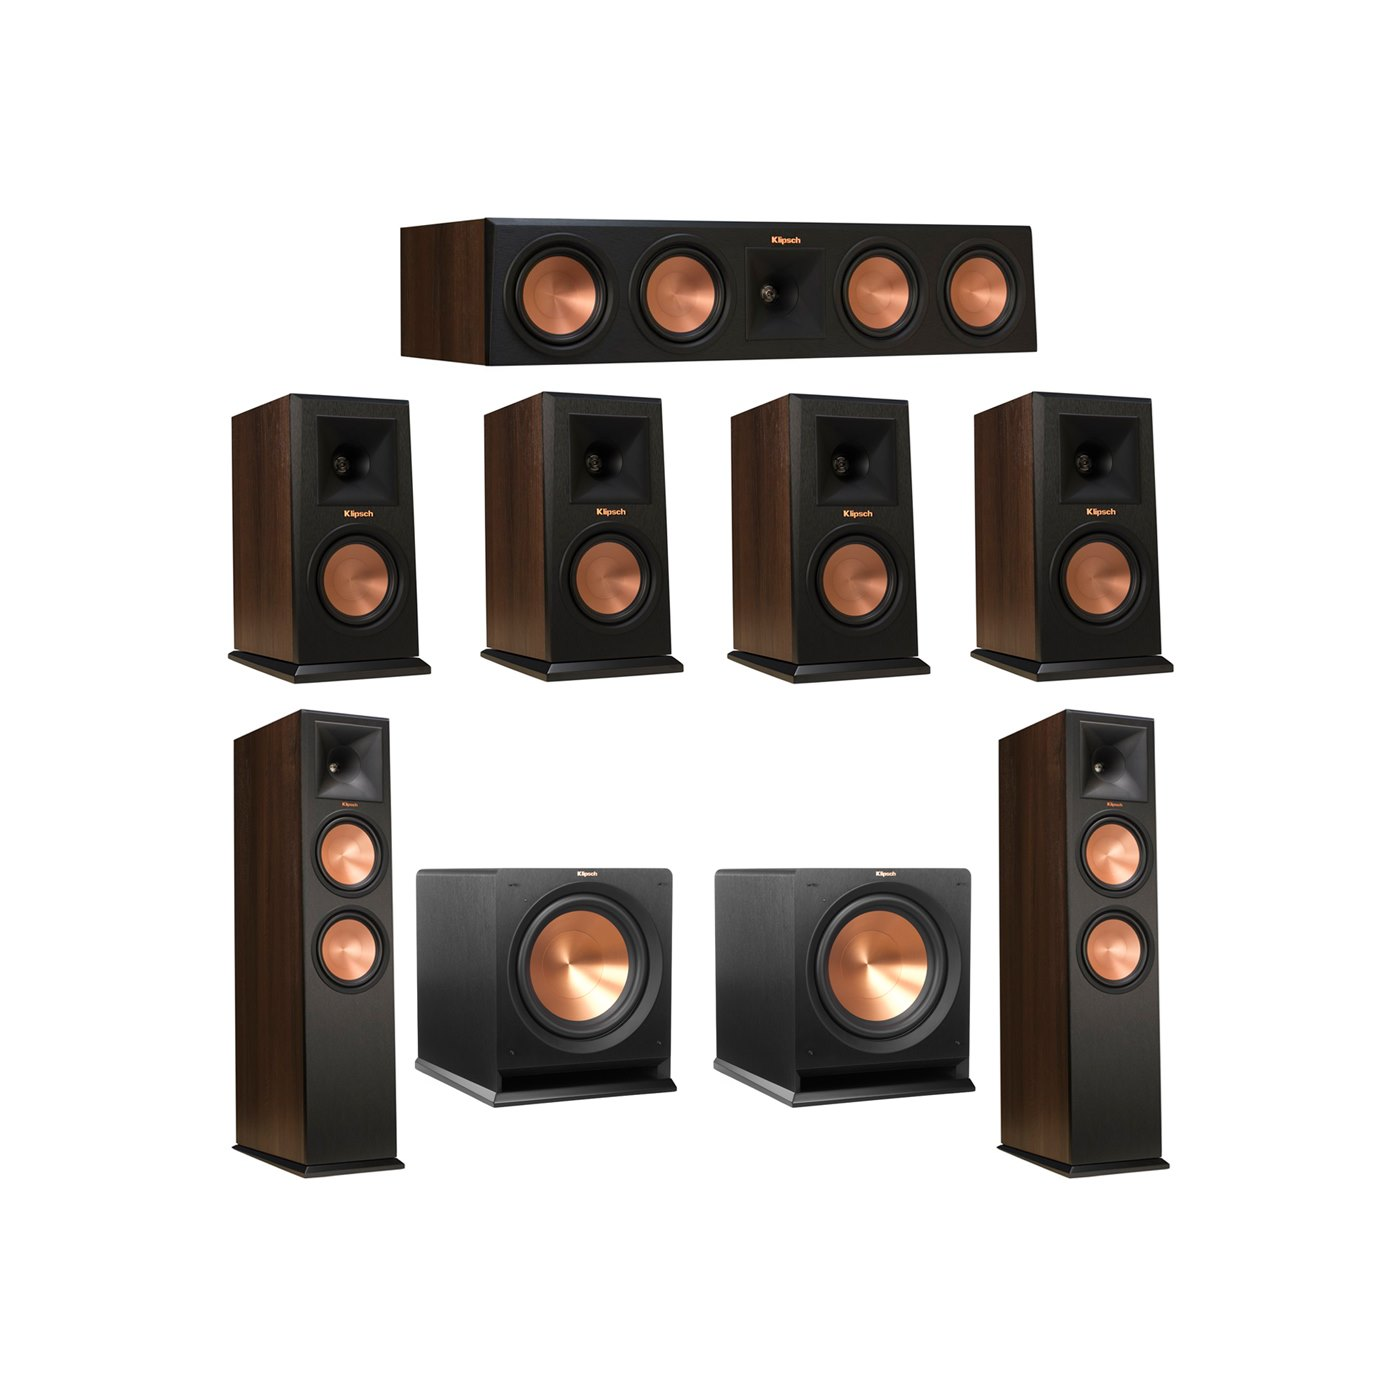 Klipsch 7.2 Walnut System with 2 RP-280F Tower Speakers, 1 RP-450C Center Speaker, 4 Klipsch RP-150M Bookshelf Speakers, 2 Klipsch R-112SW Subwoofer